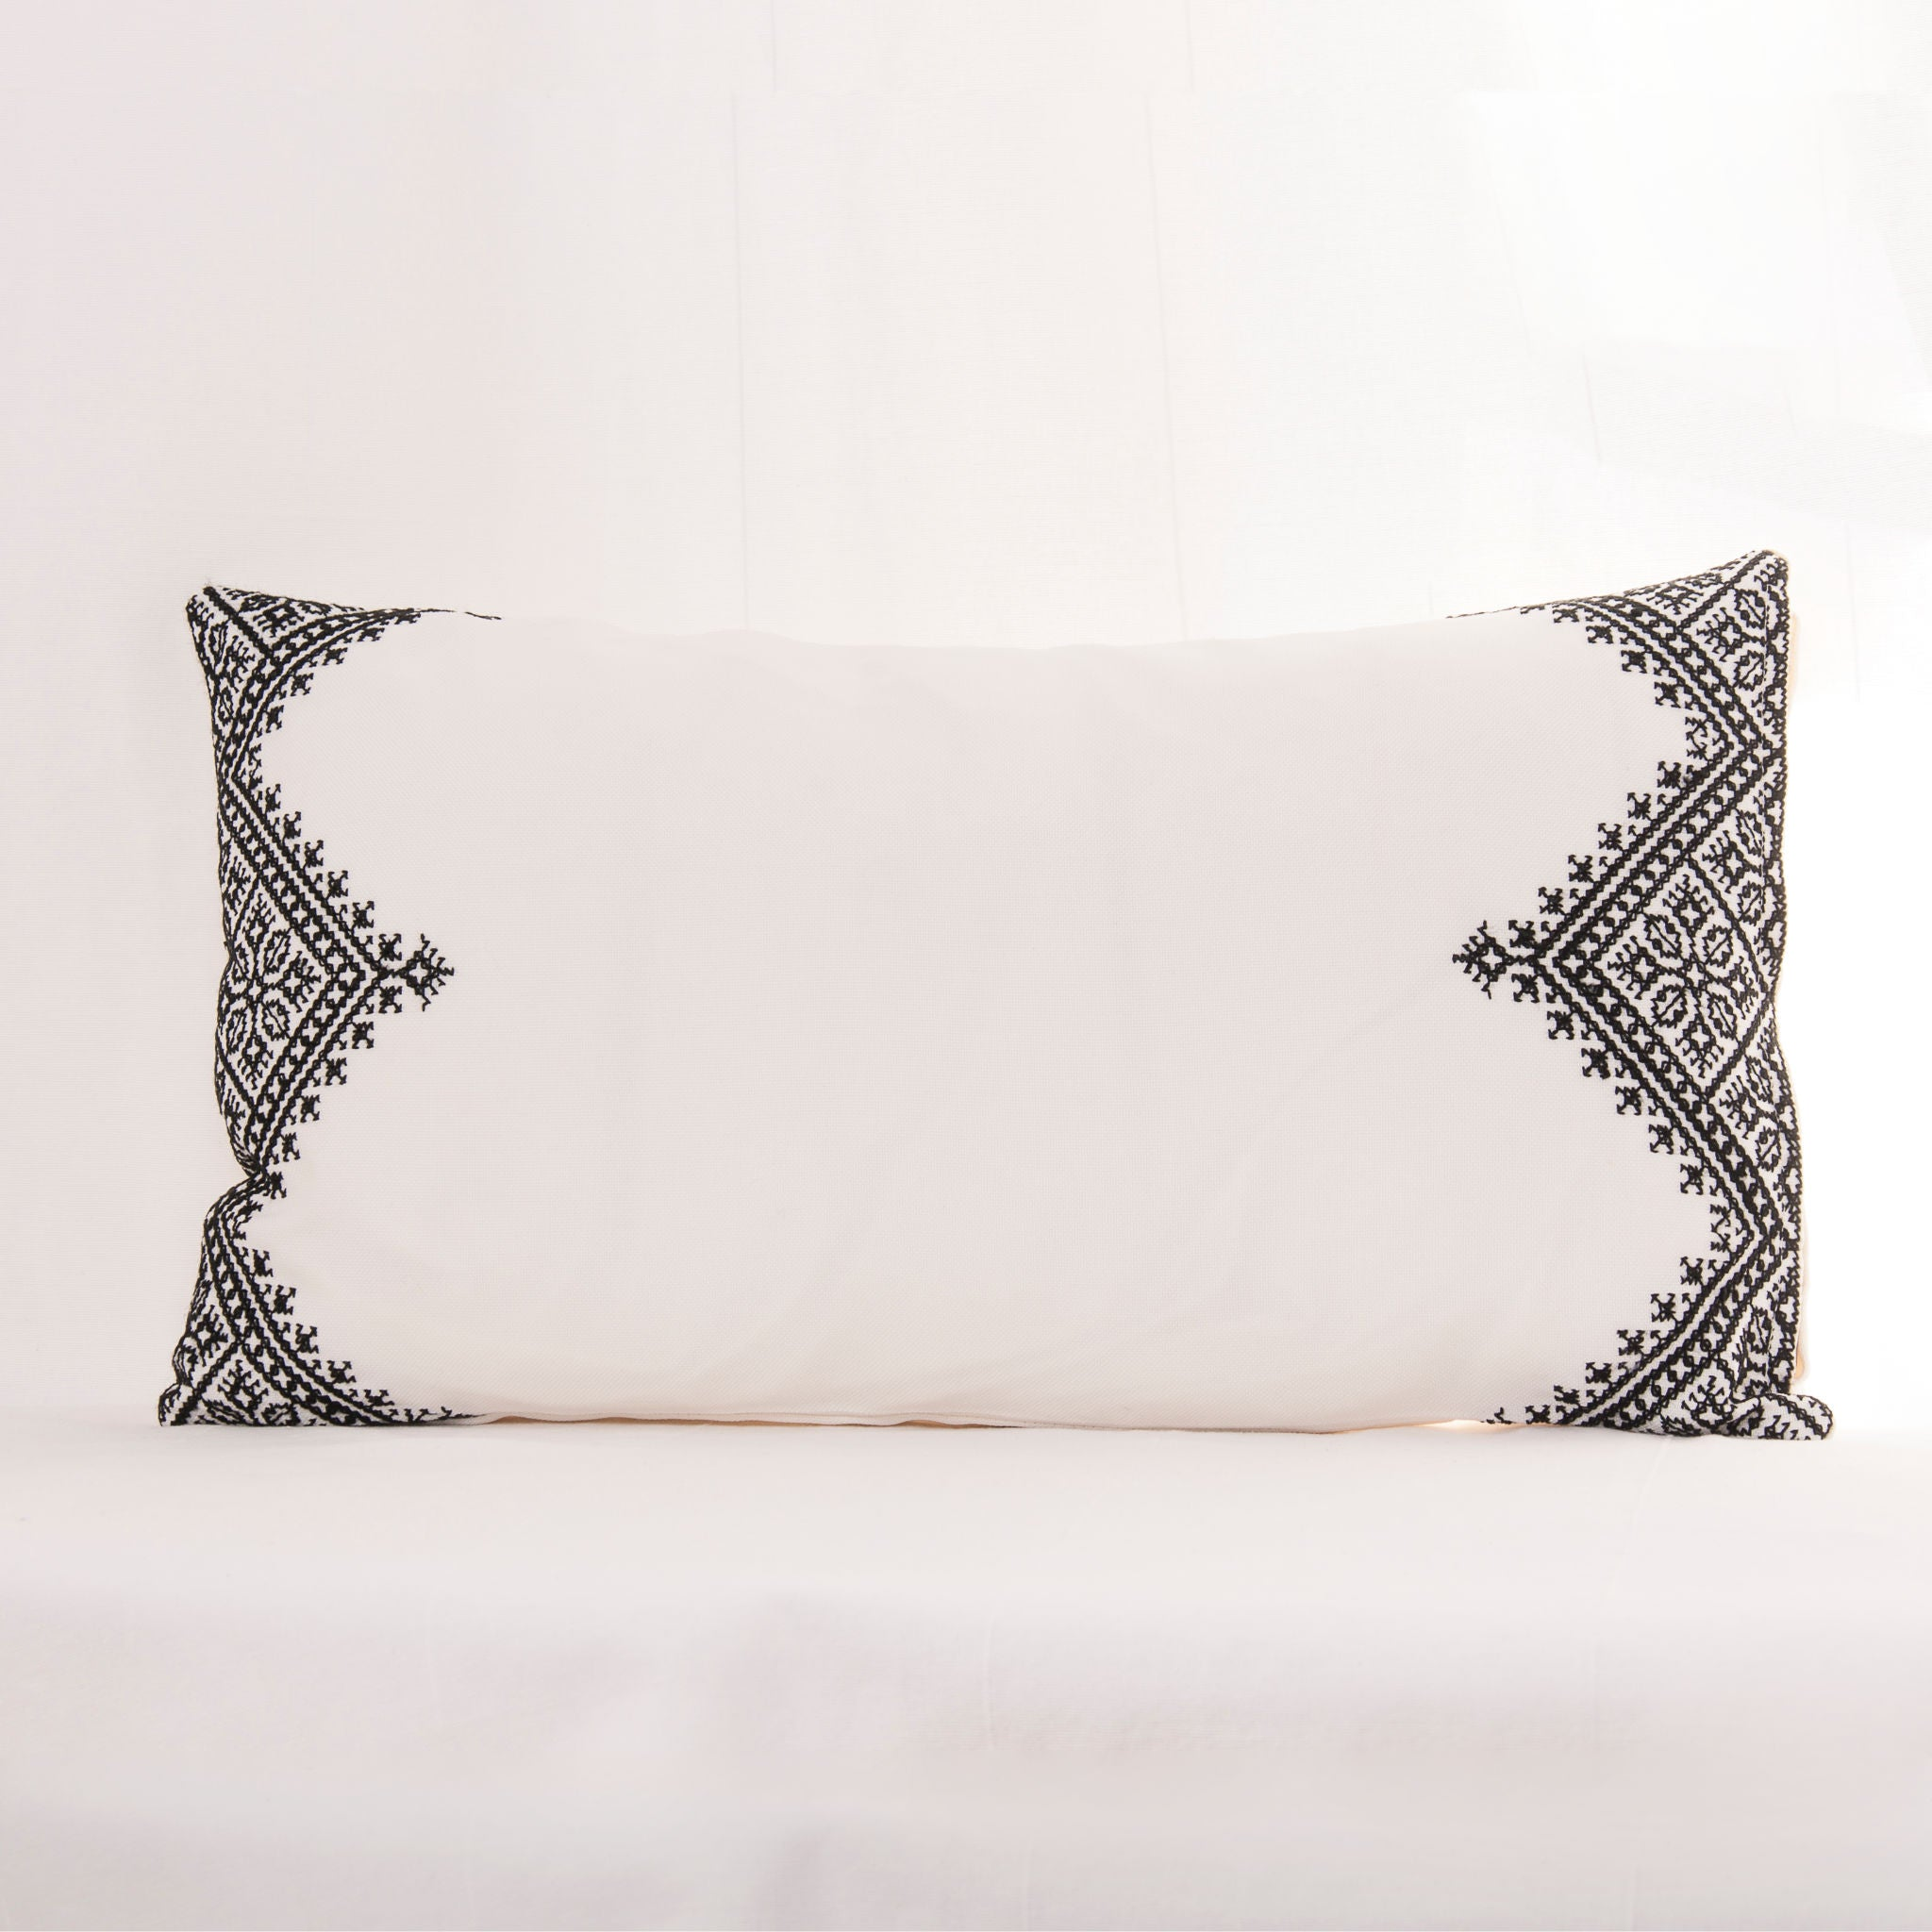 Fes-Embroidered Bordered Cushion Cover